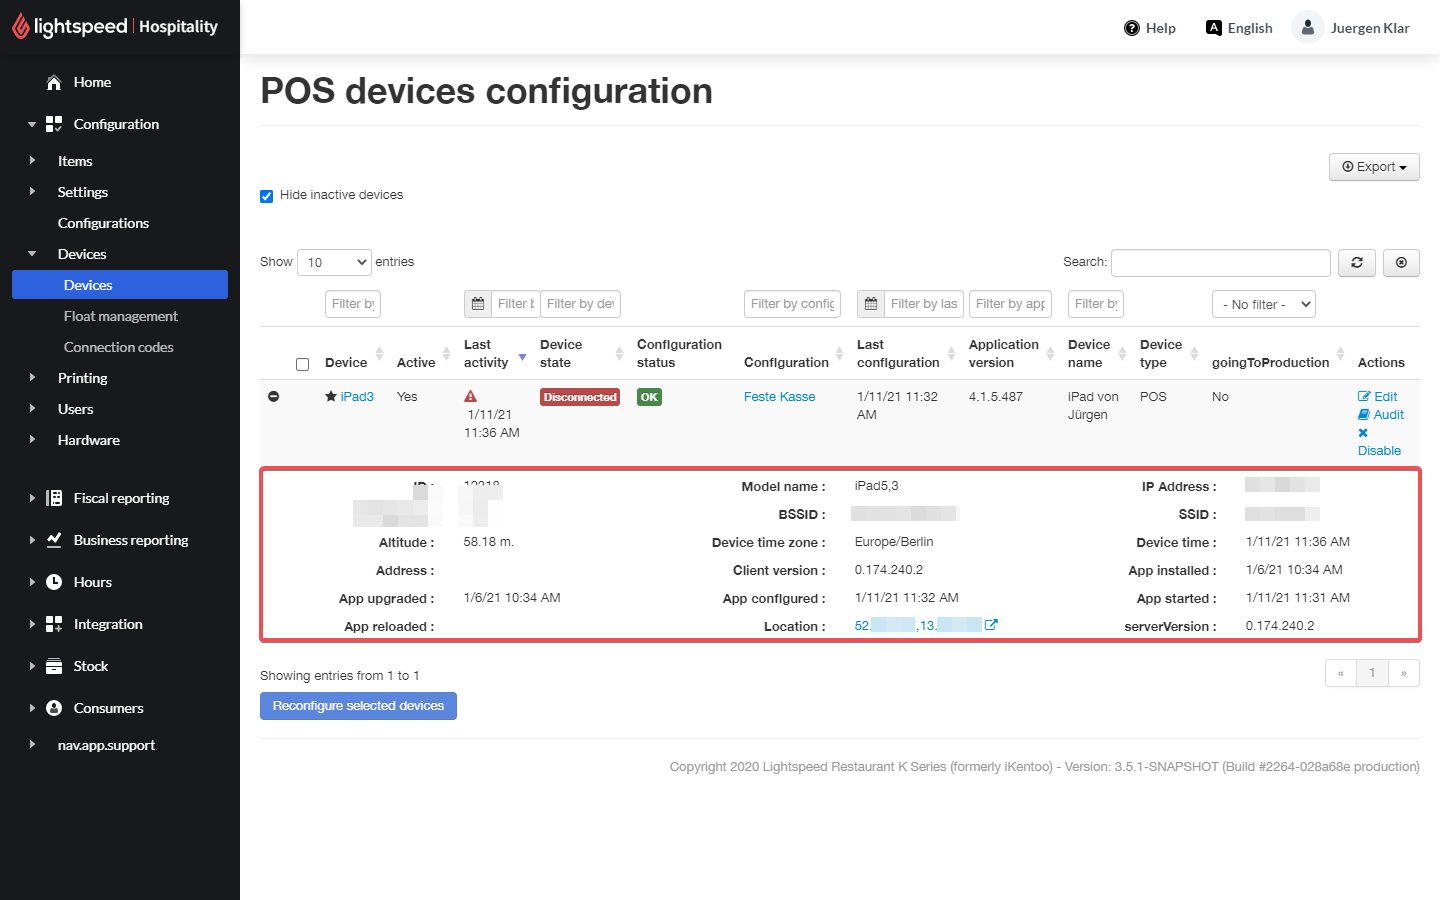 kseries-configuration-devices-devices-detailed_device_information-expanded.png